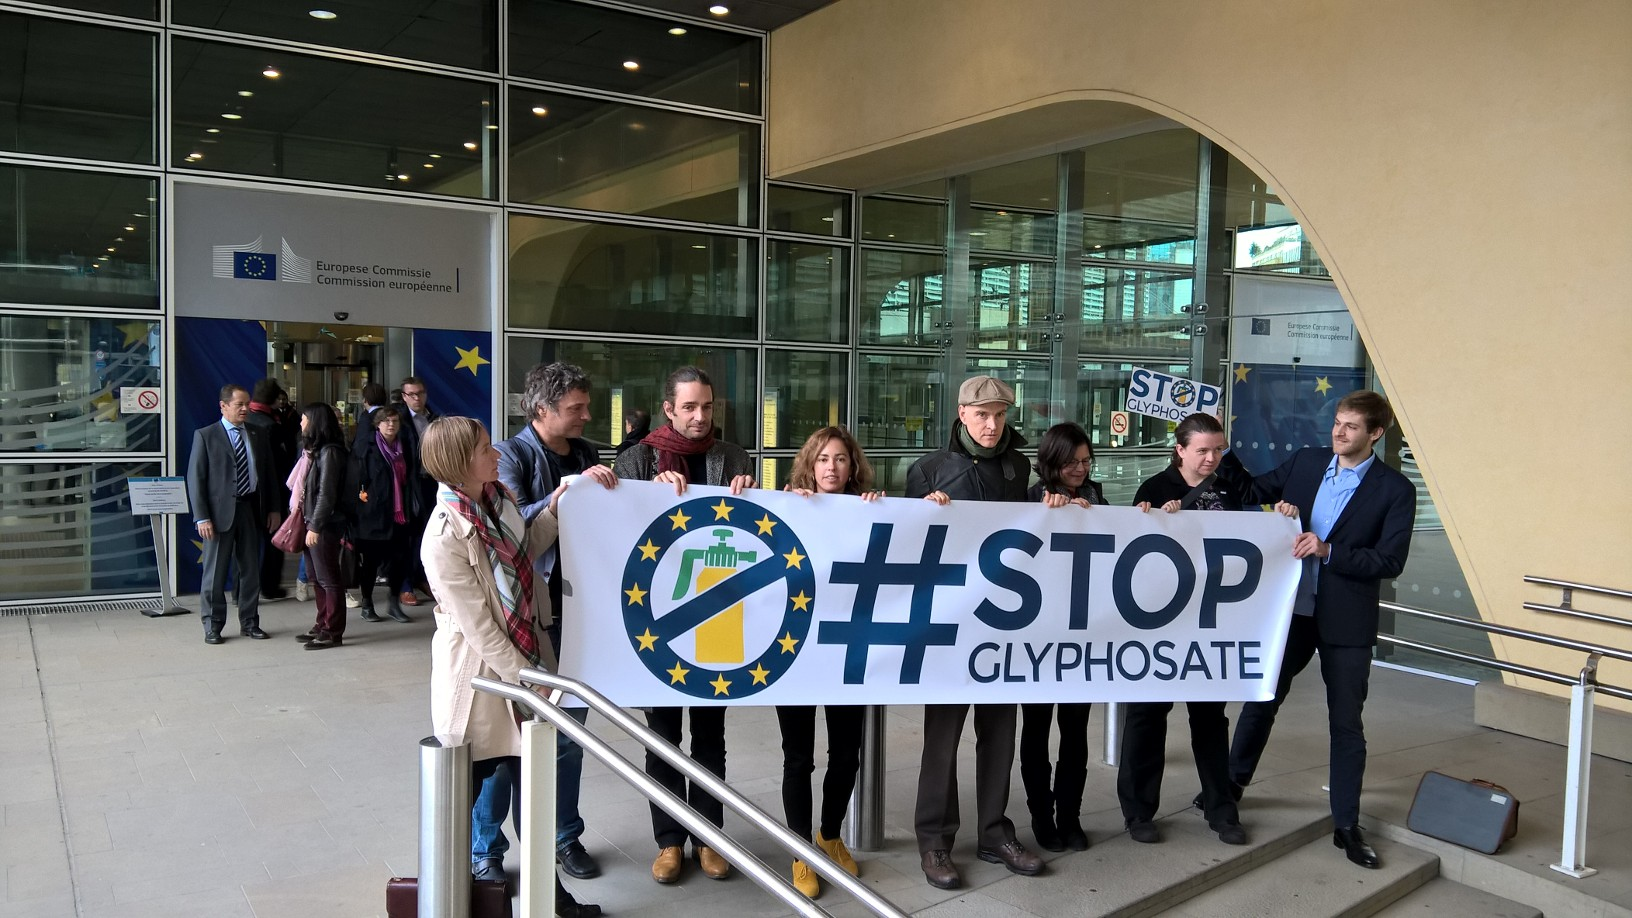 European Union postpones decision on glyphosate